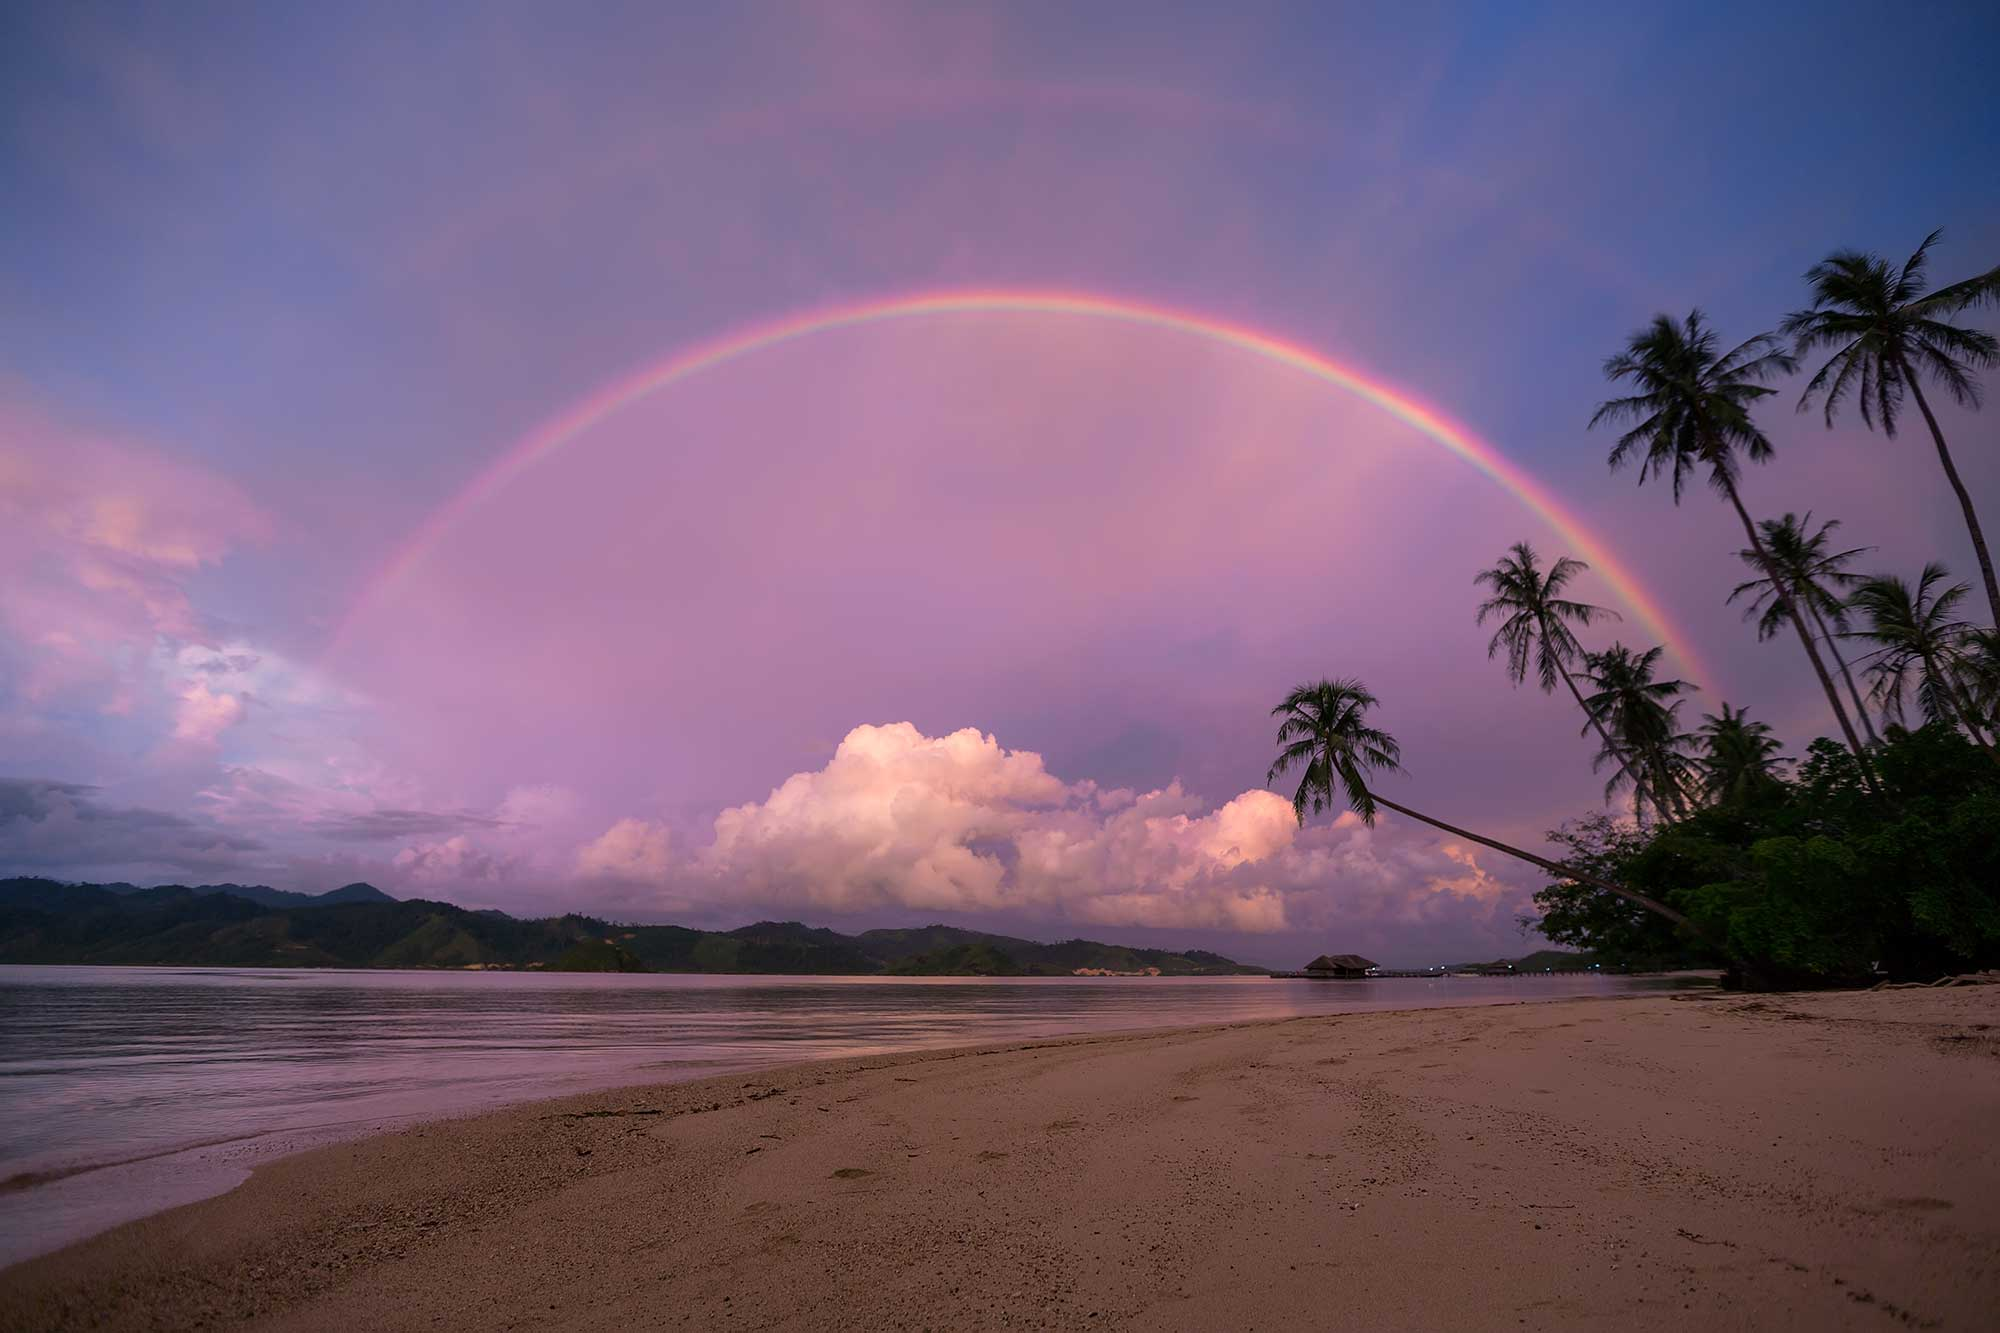 A double rainbow on Cubadak island in West Sumatra, Indonesia. © Ulli Maier & Nisa Maier